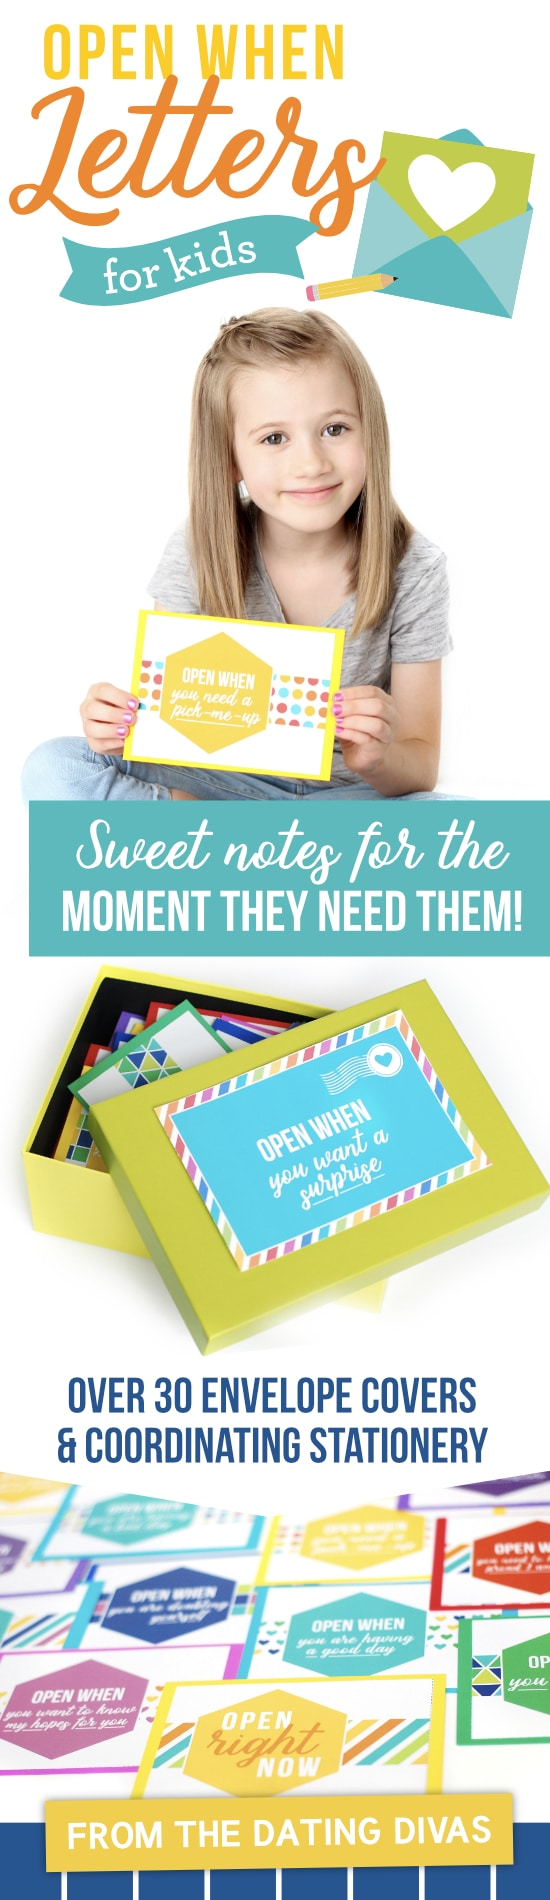 Mother's Day Sale - Connect with your little ones using our Open When Letters for Kids!